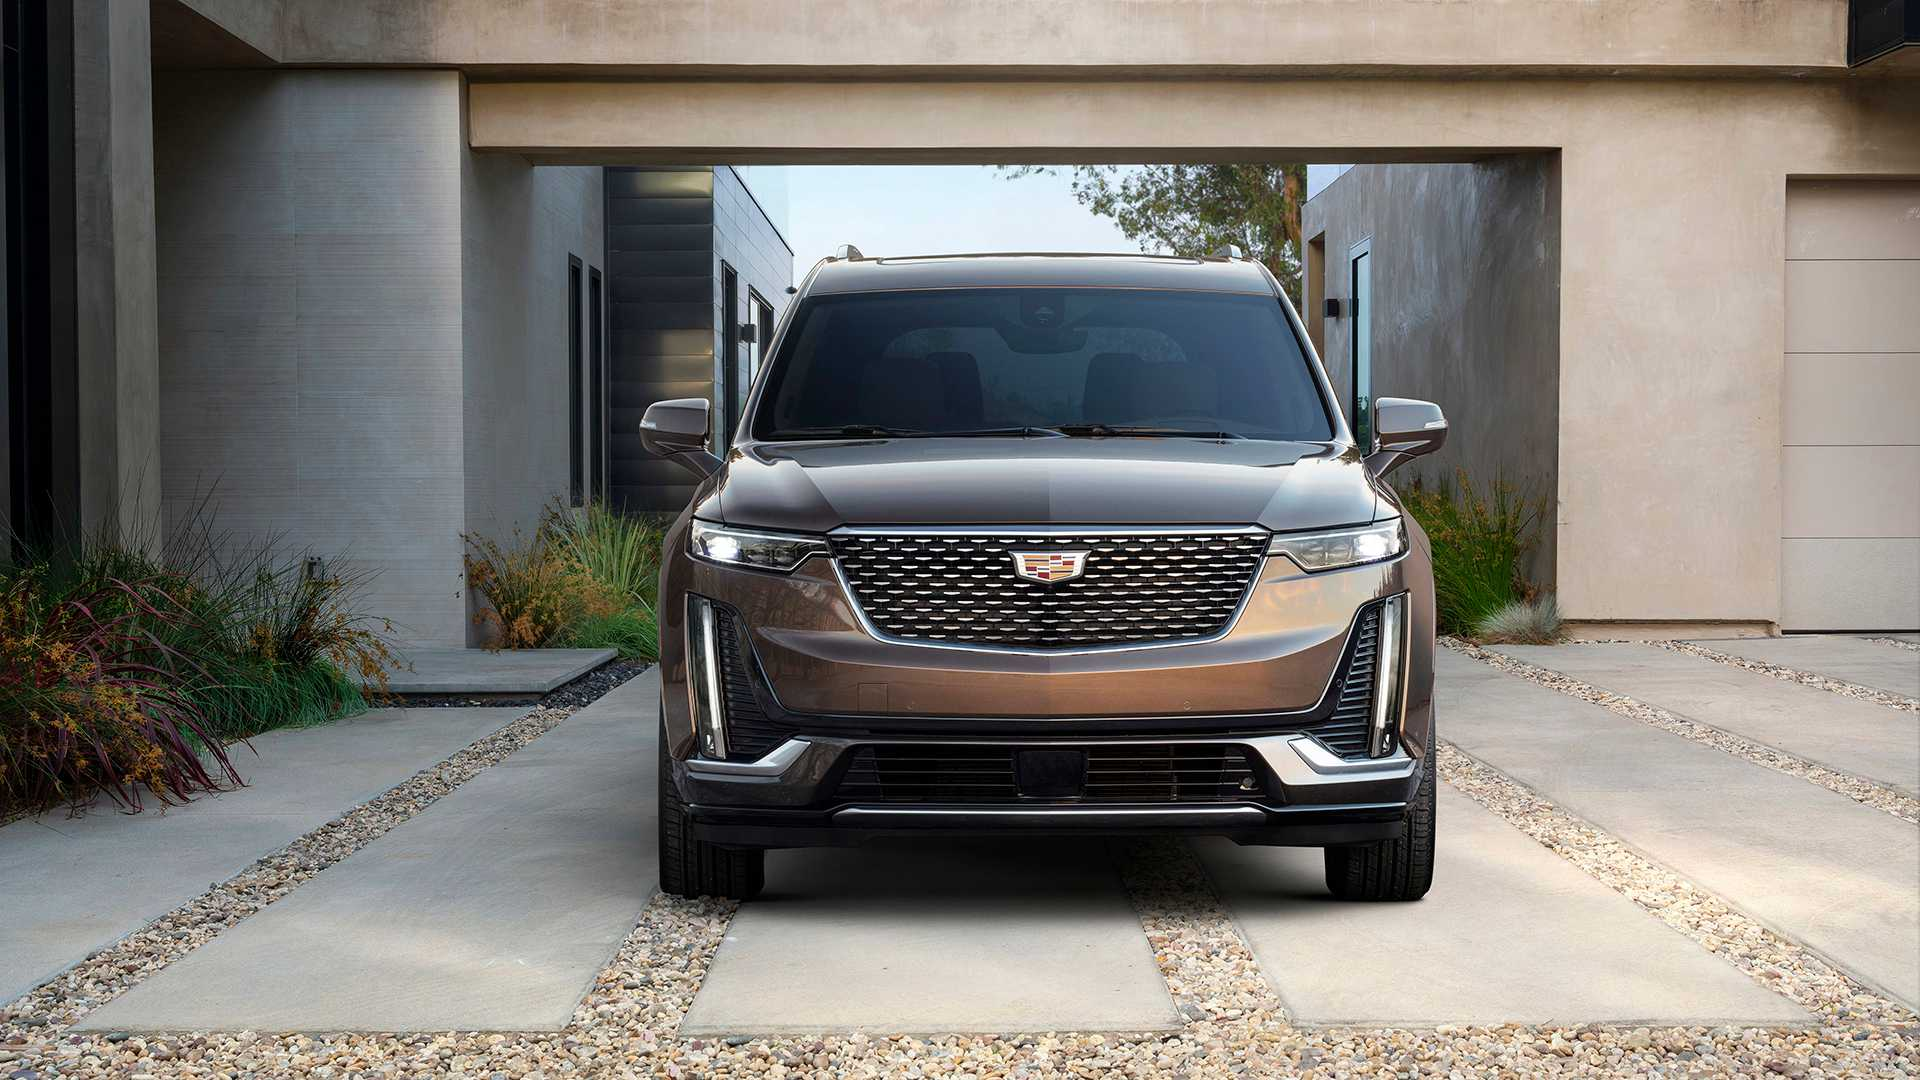 Concept This Is Cadillac's New Electric Crossover